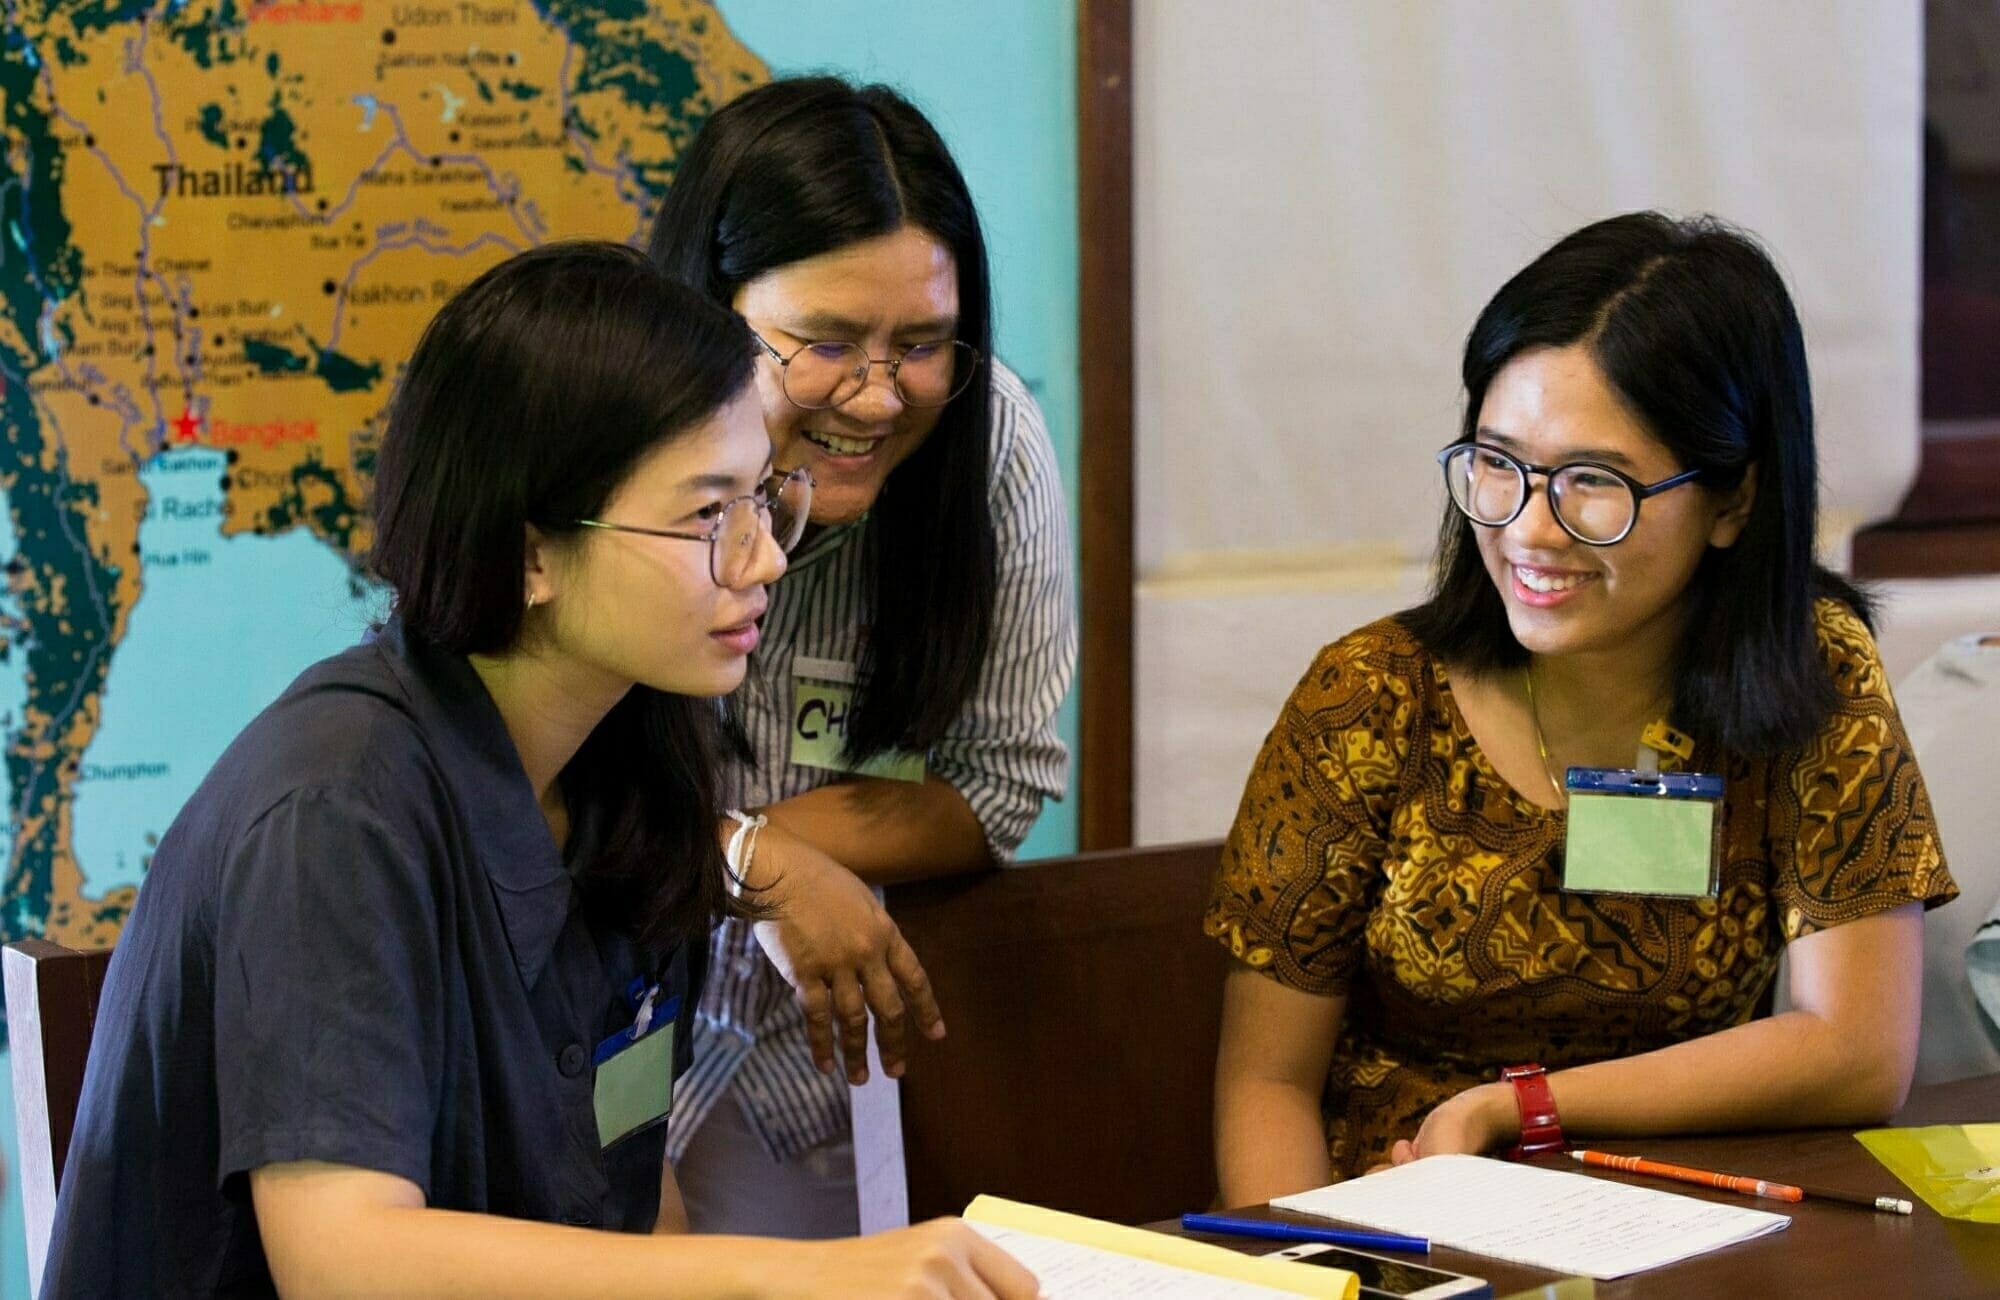 Participants in the Mekong Legal Advocacy Institute (MLAI) learn from Chompoo Korn, a Bertha Legal Fellow at EarthRights International. MLAI is an annual two-week program that aims to inspire and train the next generation of young legal advocates working for human rights and the environment. Participants attend to learn about topics that are not traditionally taught at local law schools – including Environmental Impact Assessments, human rights, and international financial institutions.